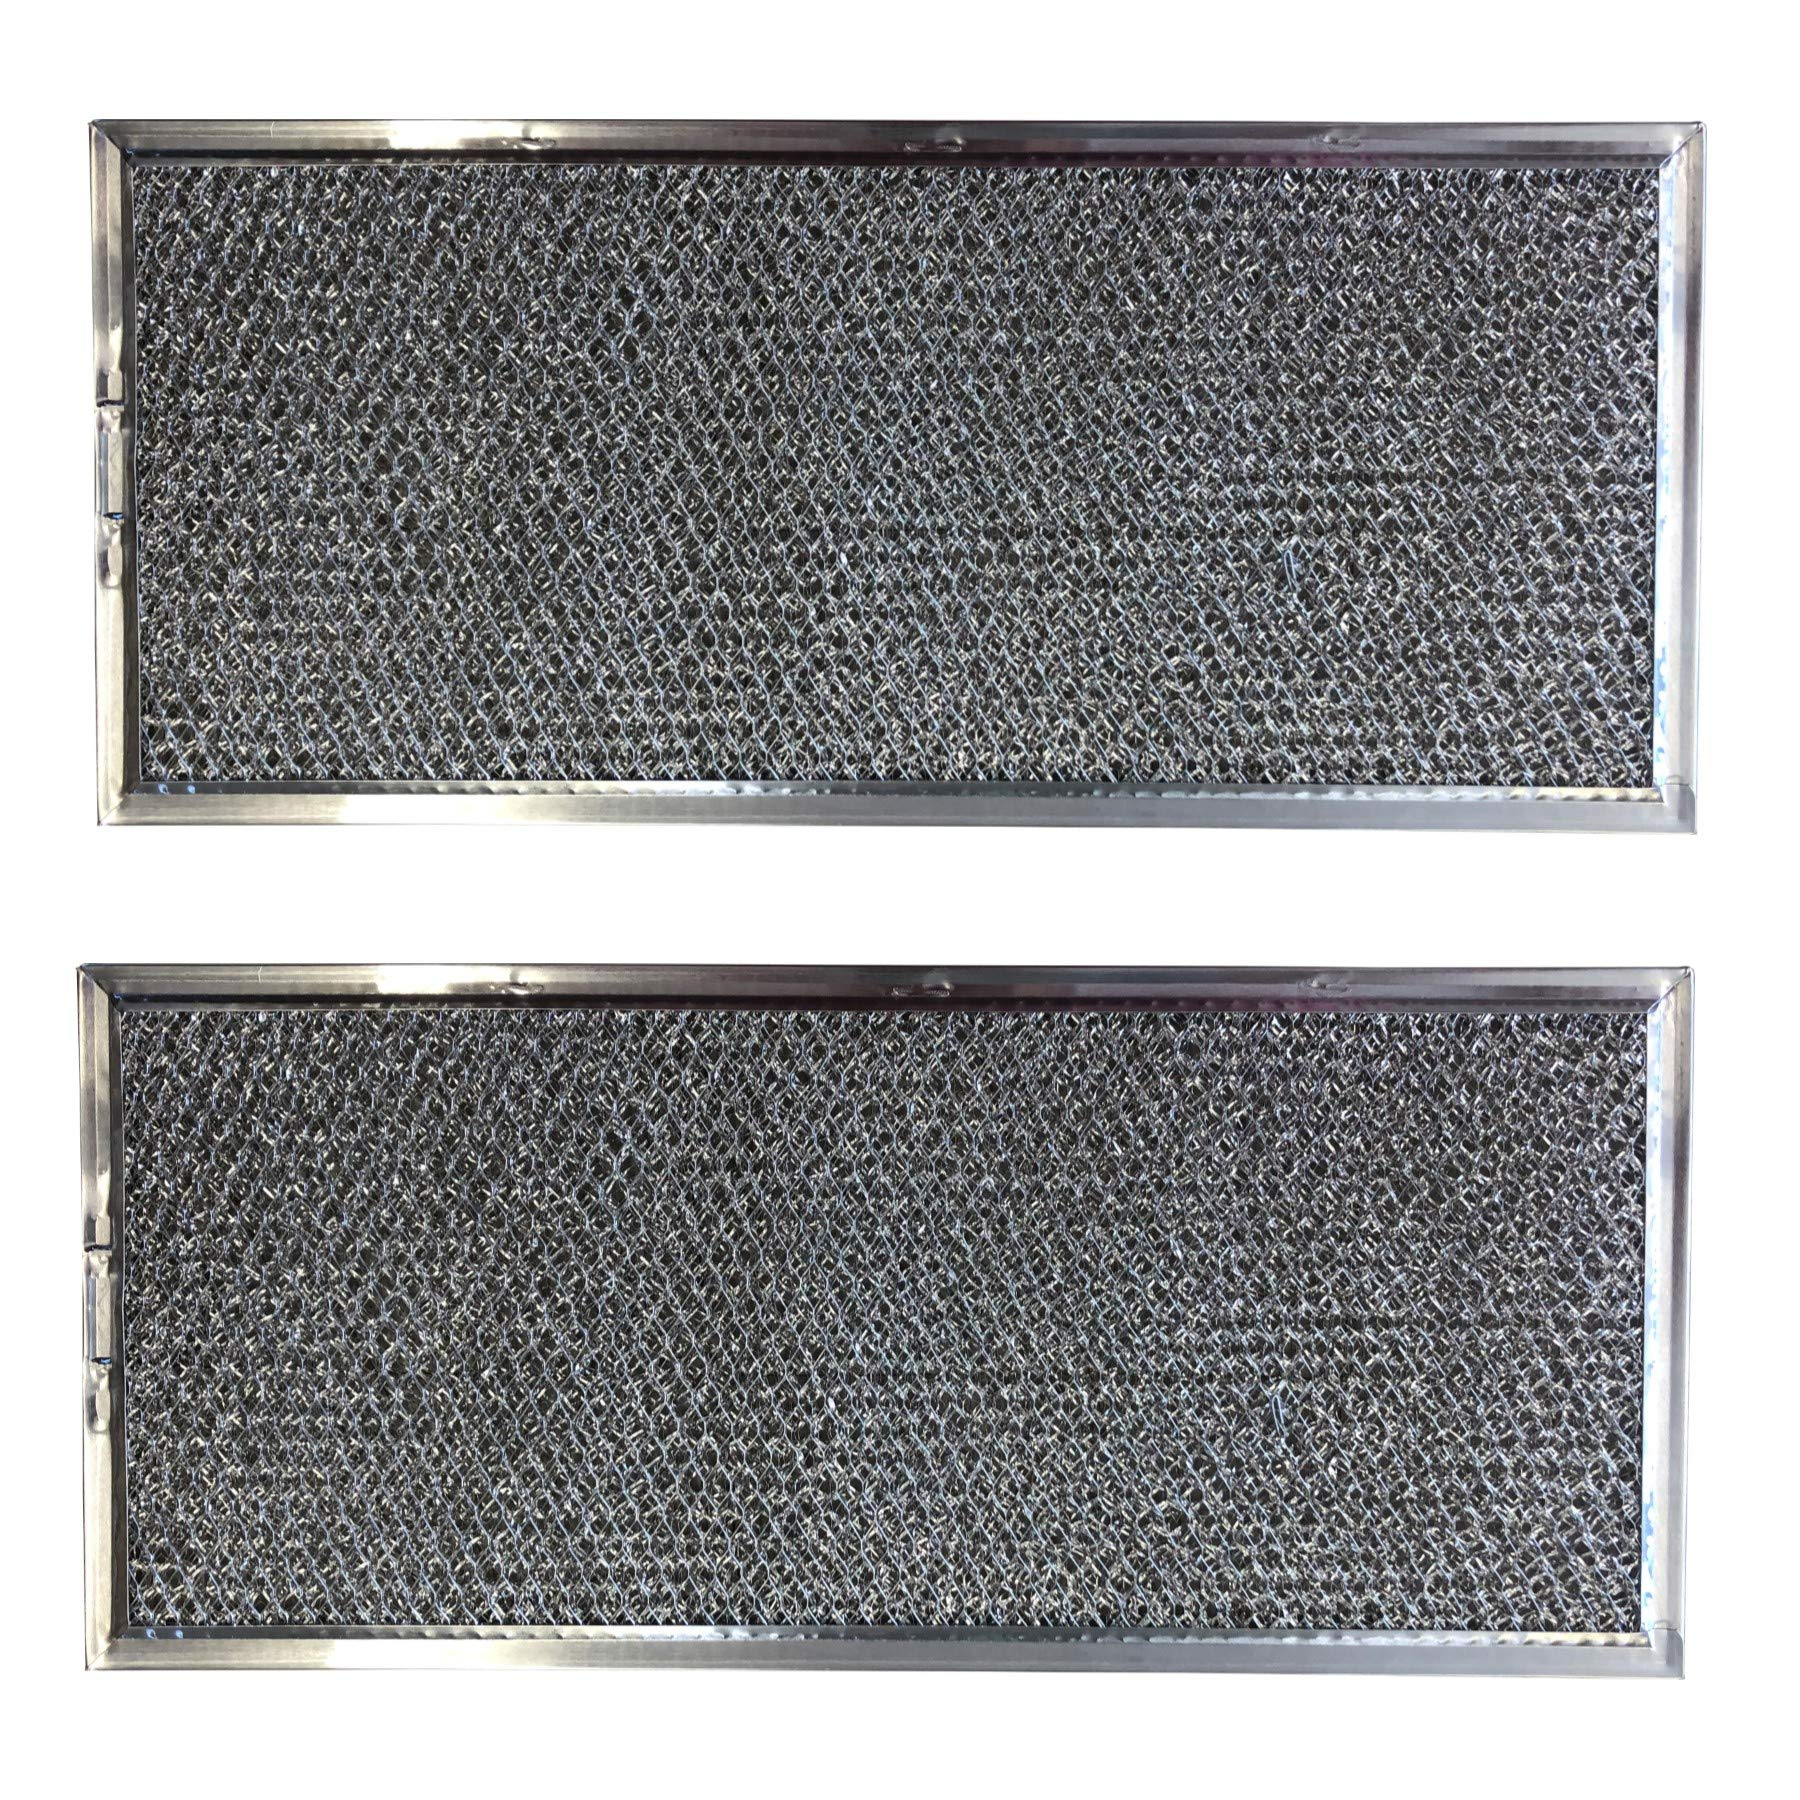 Replacement Aluminum Microwave Filters Compatible With Whirlpool W10120839A and More   5 5/8 x 11 5/